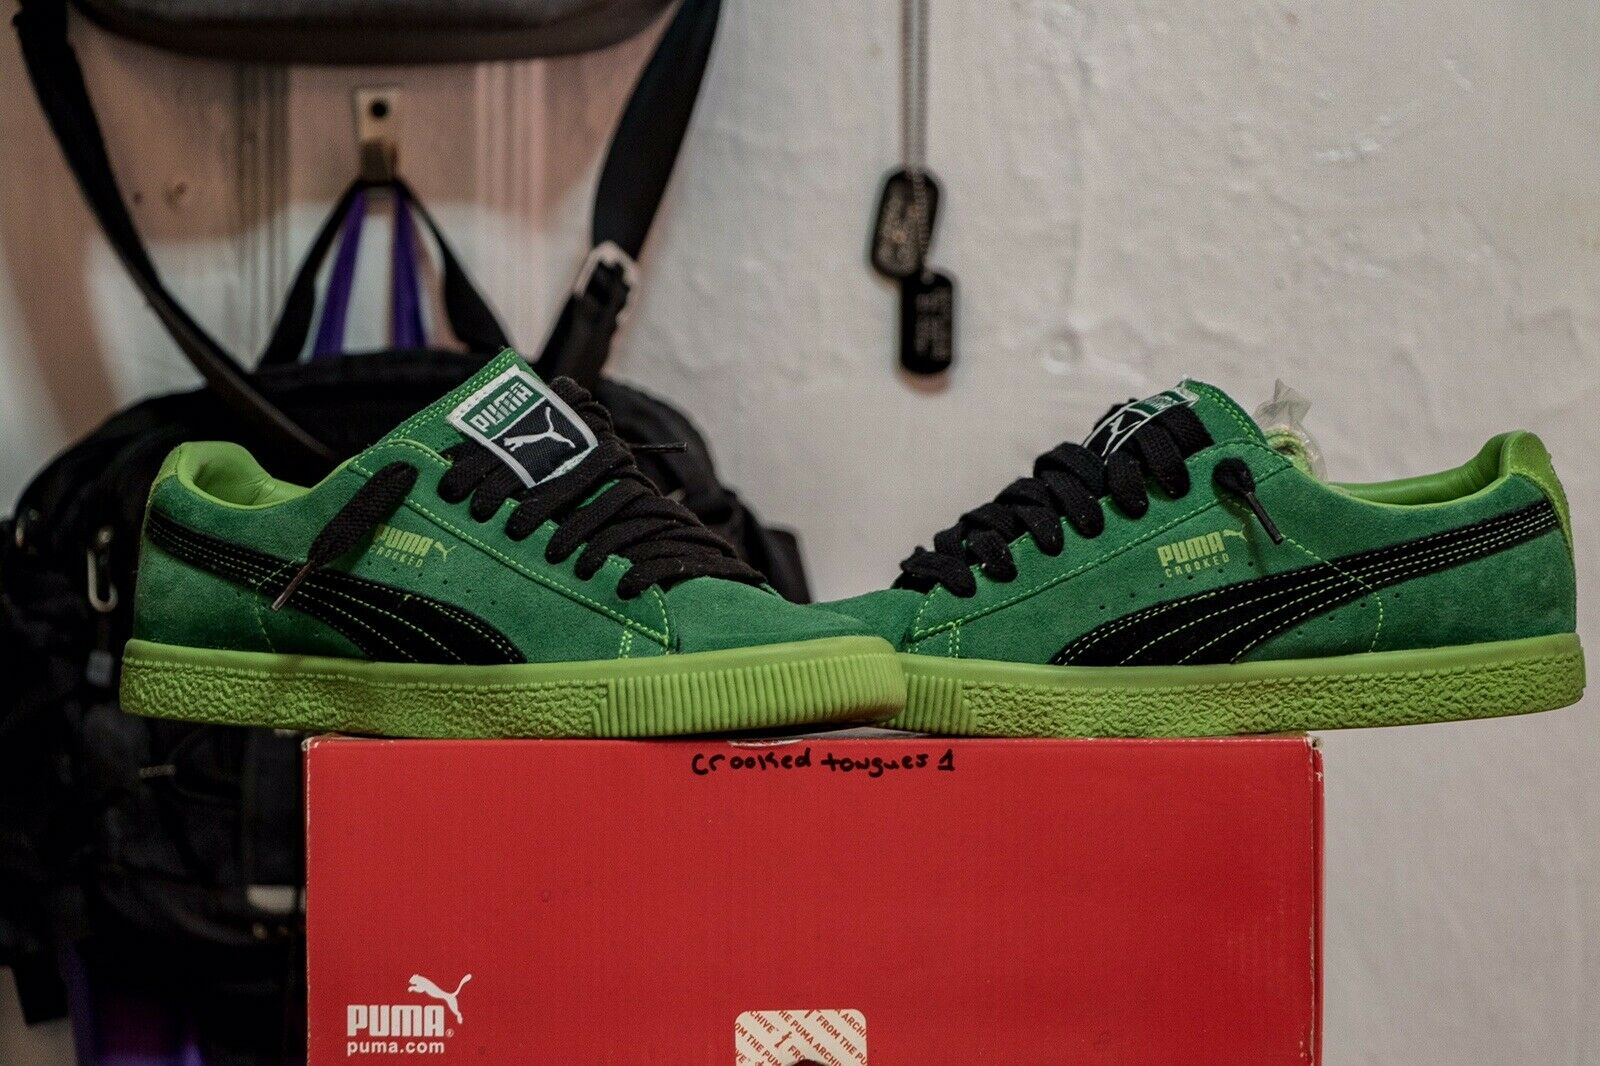 PUMA X CROOKED TONGUES CLYDE SIZE 8 Amazon Green